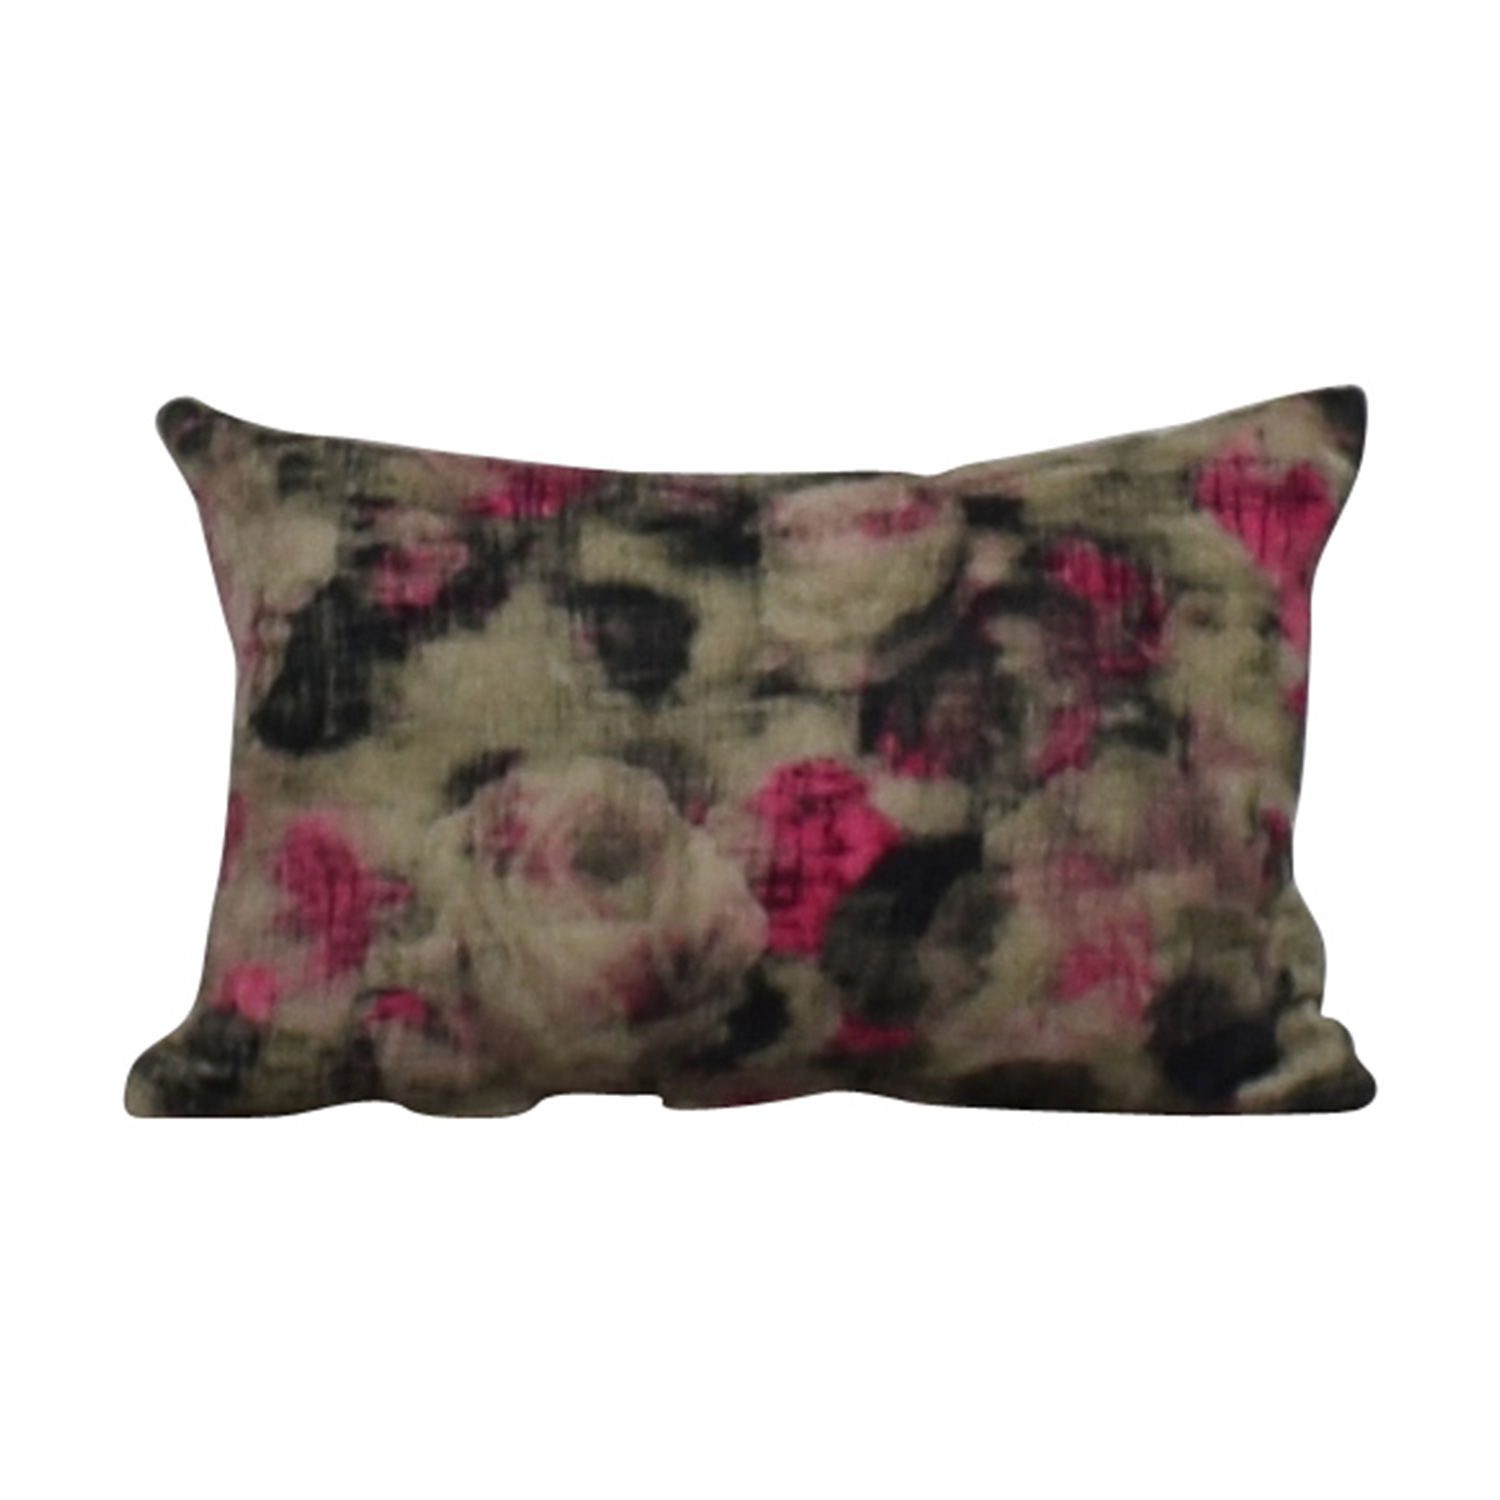 50% OFF - West Elm West Elm Splatter Pillow / Decor